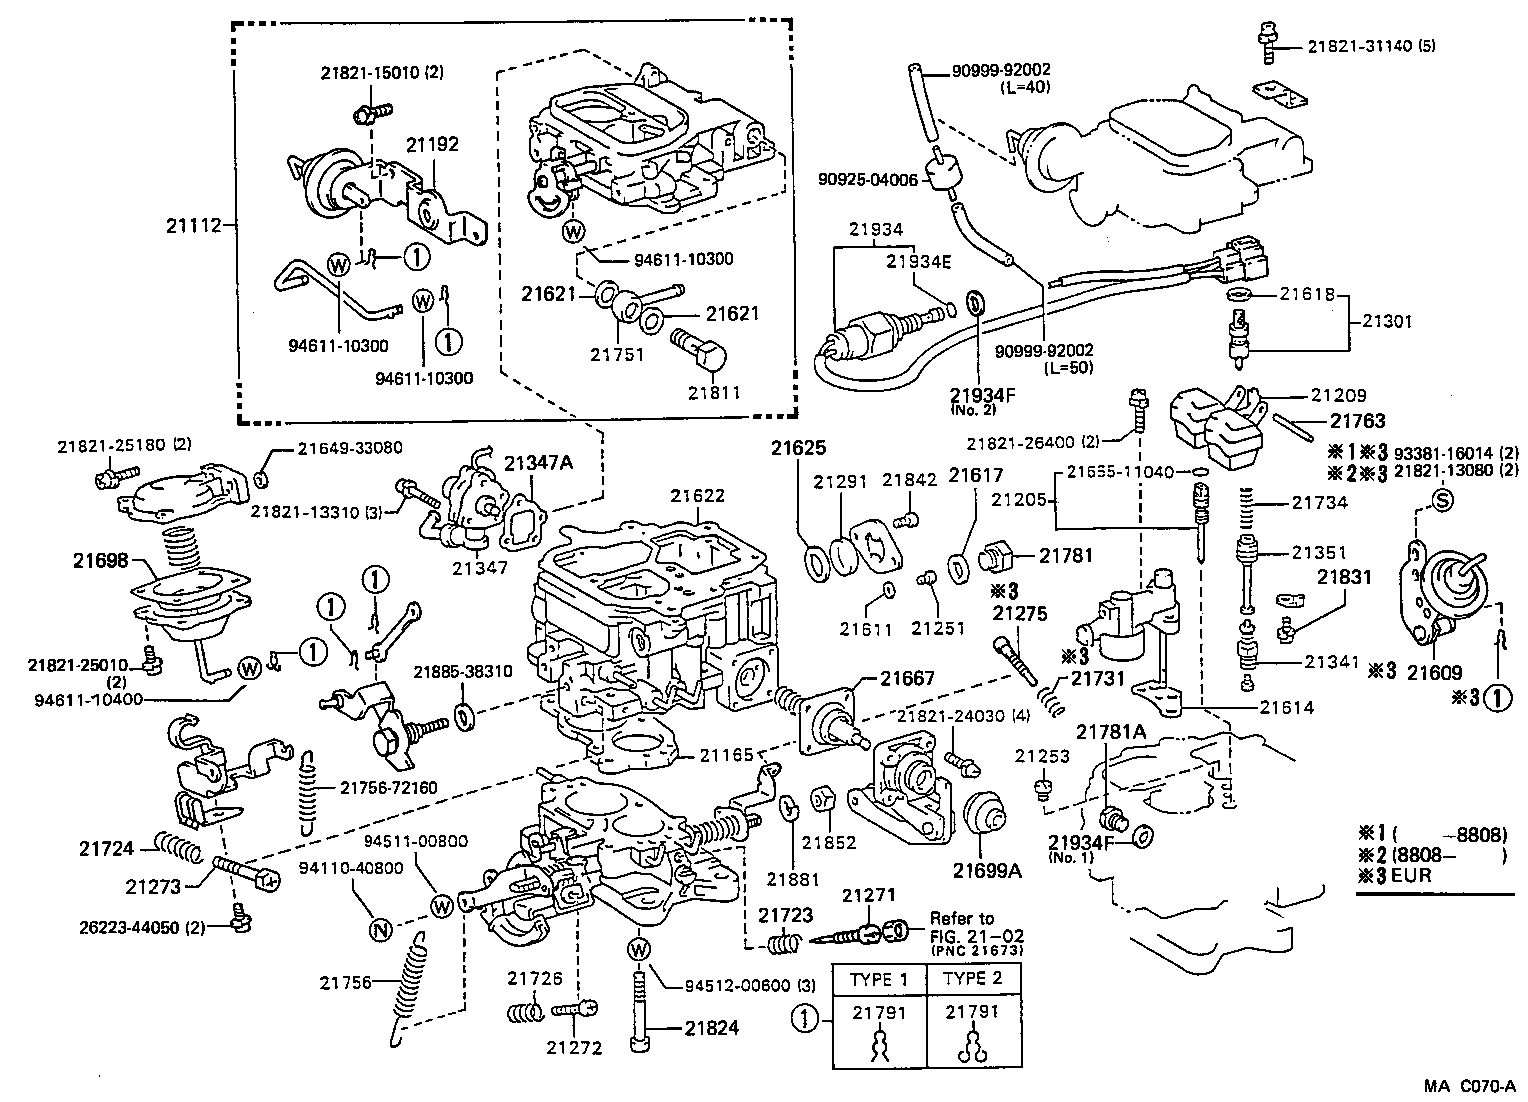 1991 toyota previa engine diagram